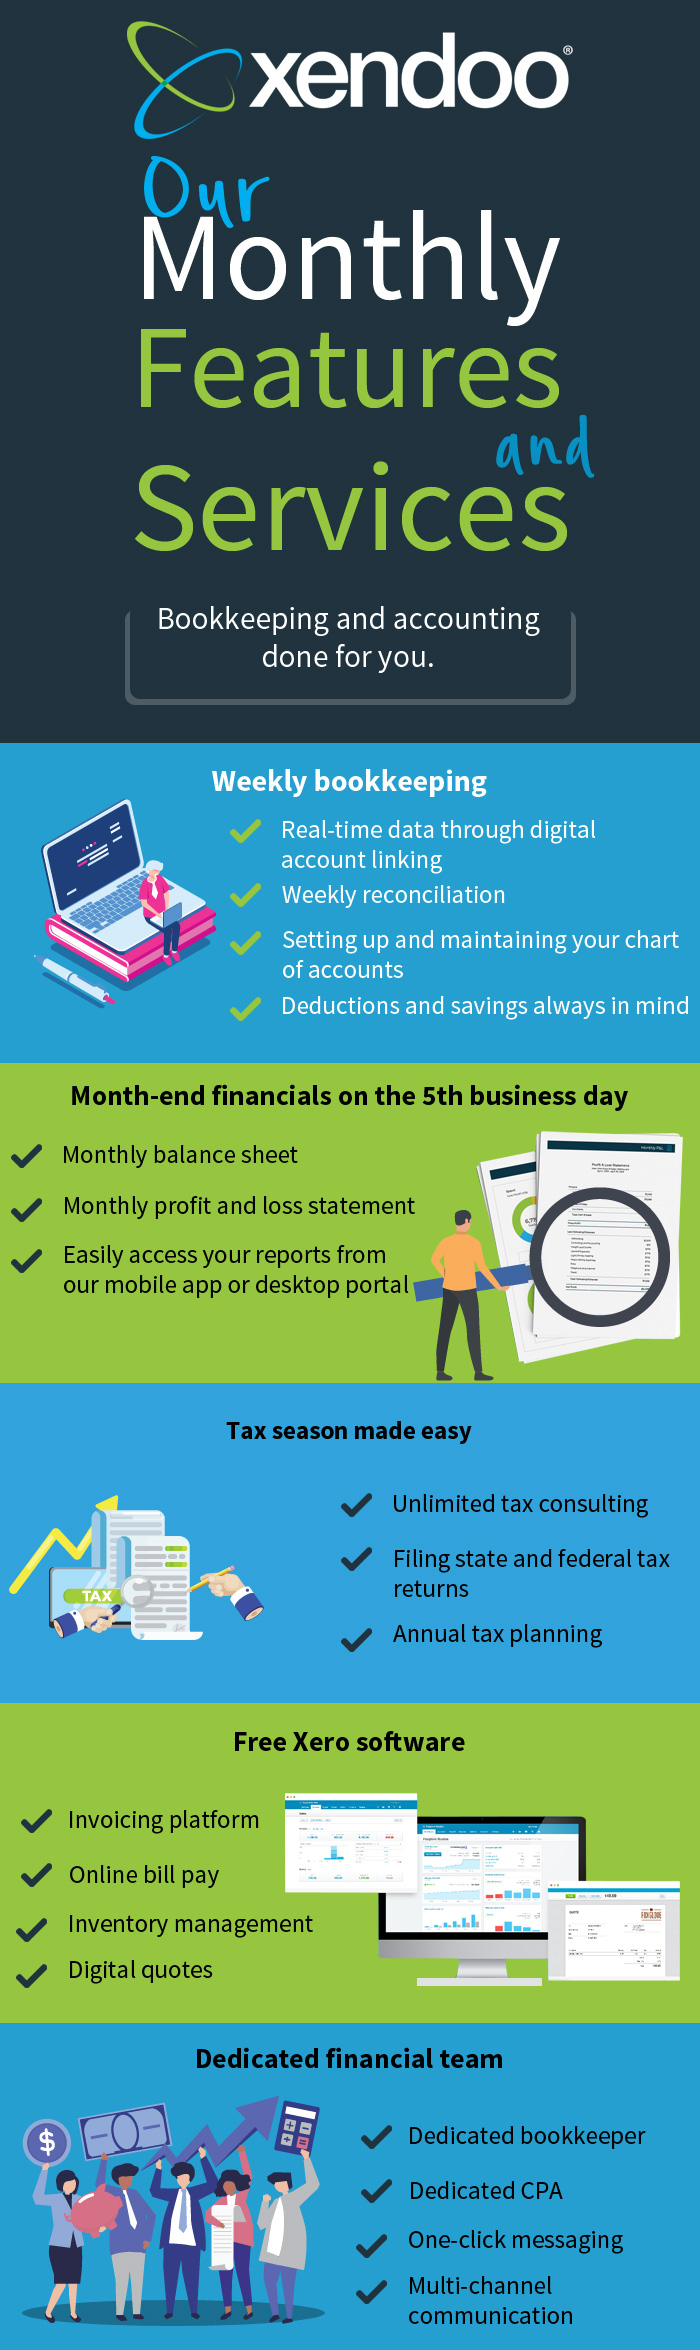 Choose Xendoo for Affordable Monthly Bookkeeping & Accounting Services